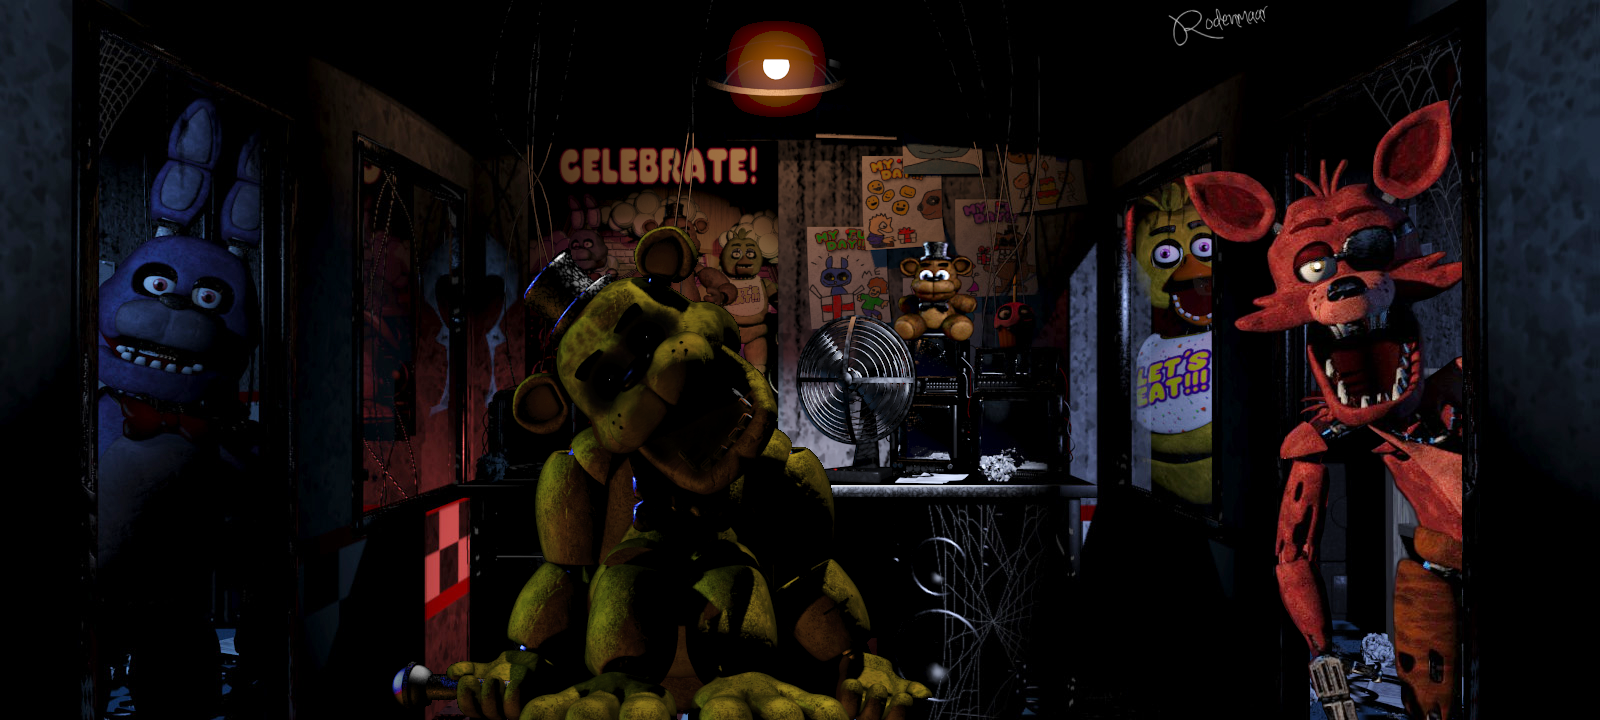 Images of Fnaf 1 All Characters - industrious info